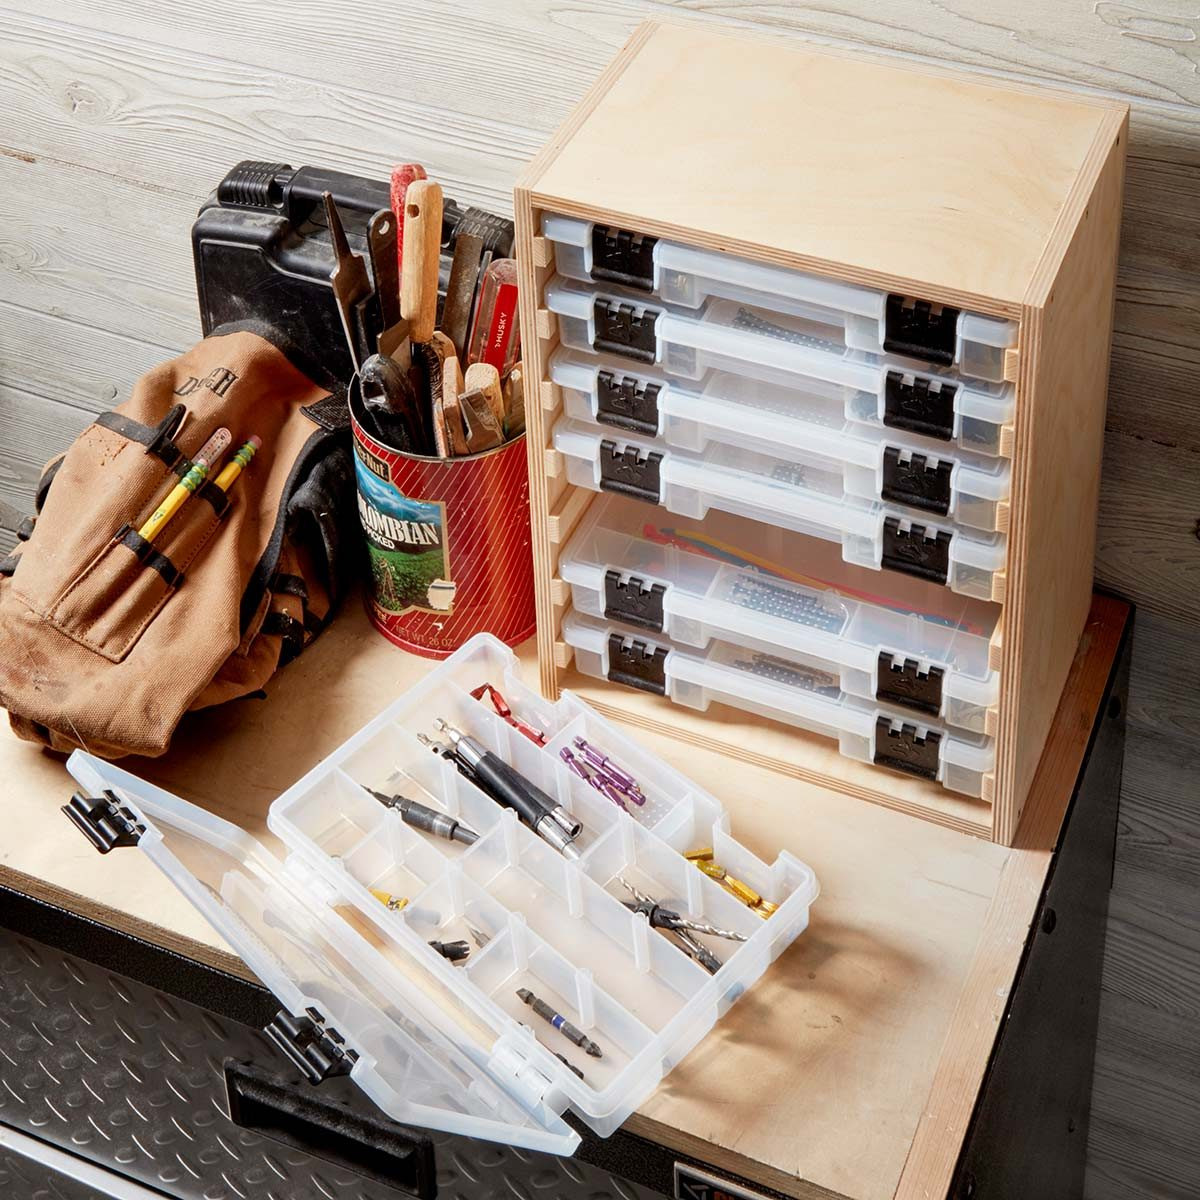 Easy To Build Benchtop Organizer The Family Handyman